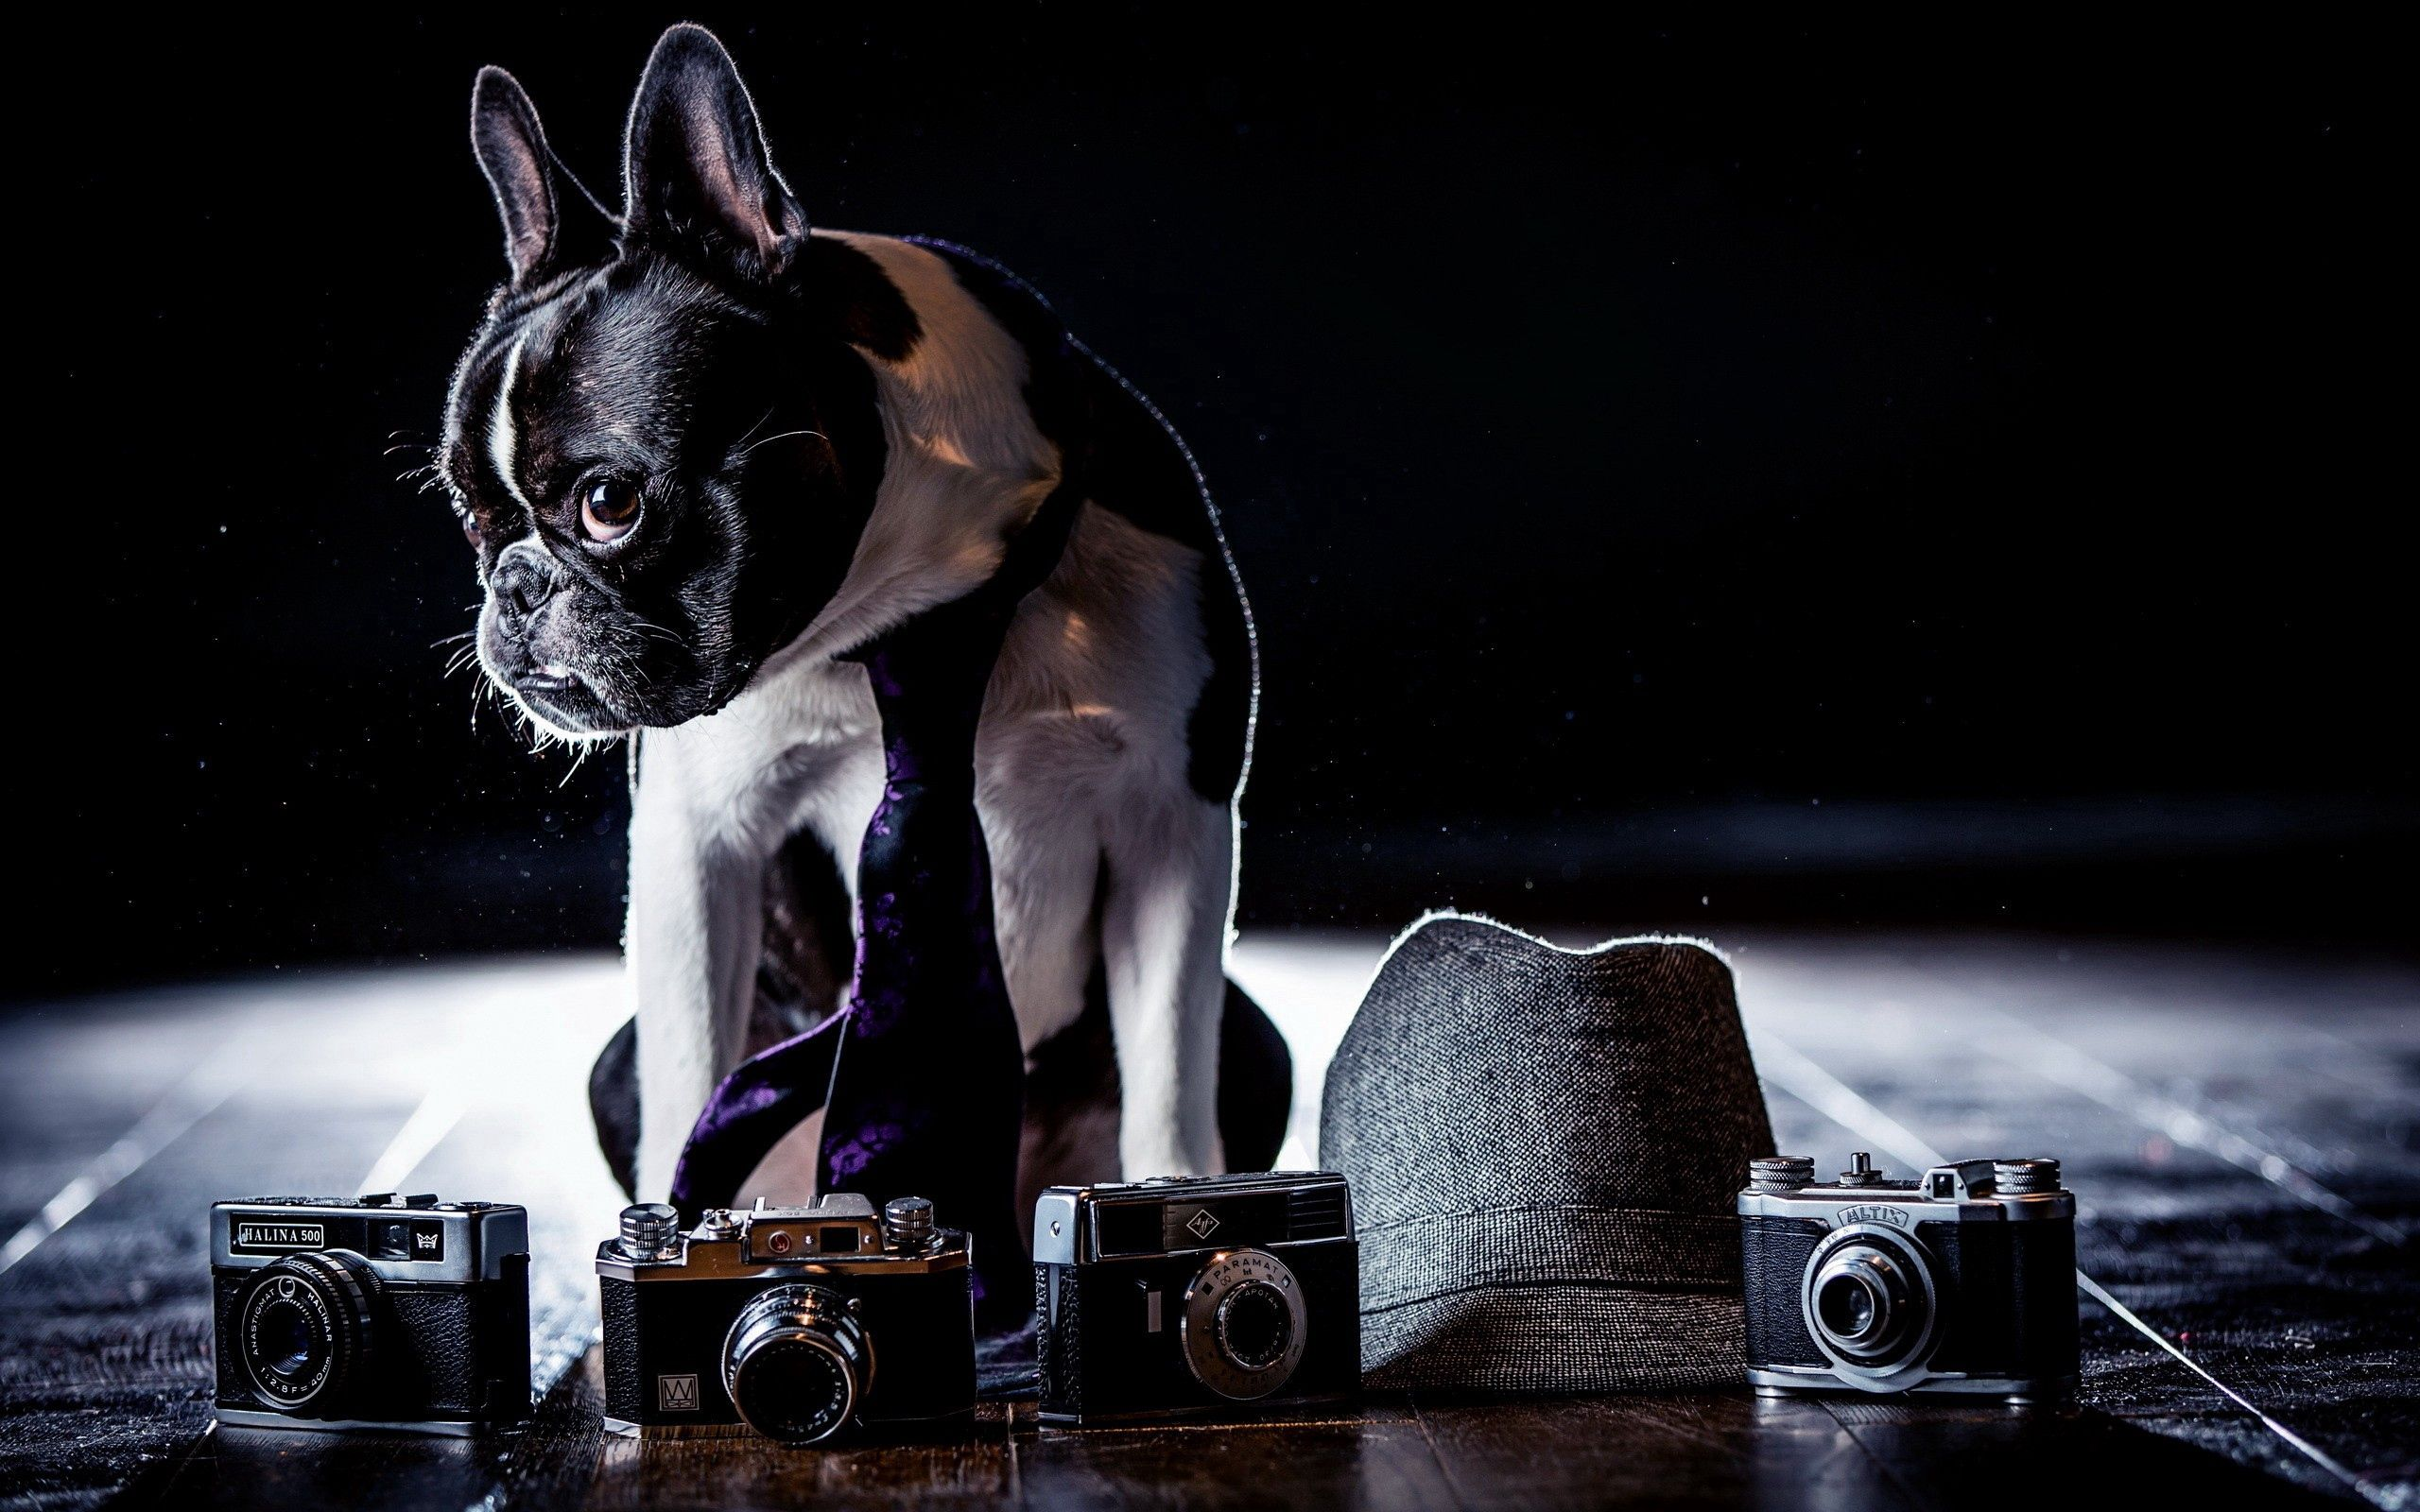 91623 download wallpaper Animals, Bulldog, Costume, Cameras, Shadow, Tie, Dog, Hat, Sight, Opinion screensavers and pictures for free